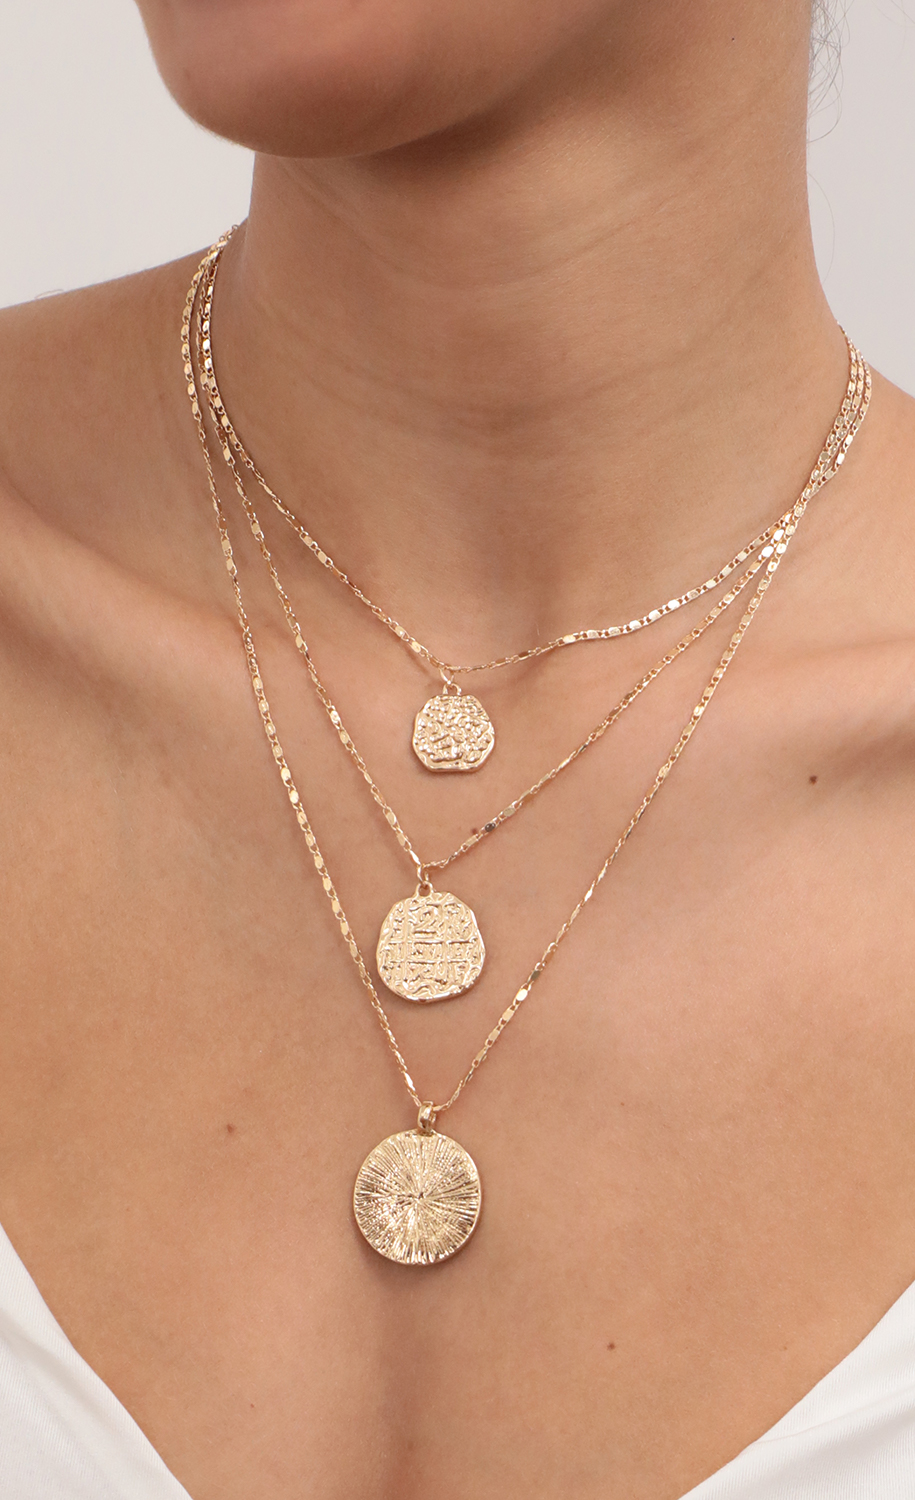 Multi Layered Chain Necklace With Coin Pendant